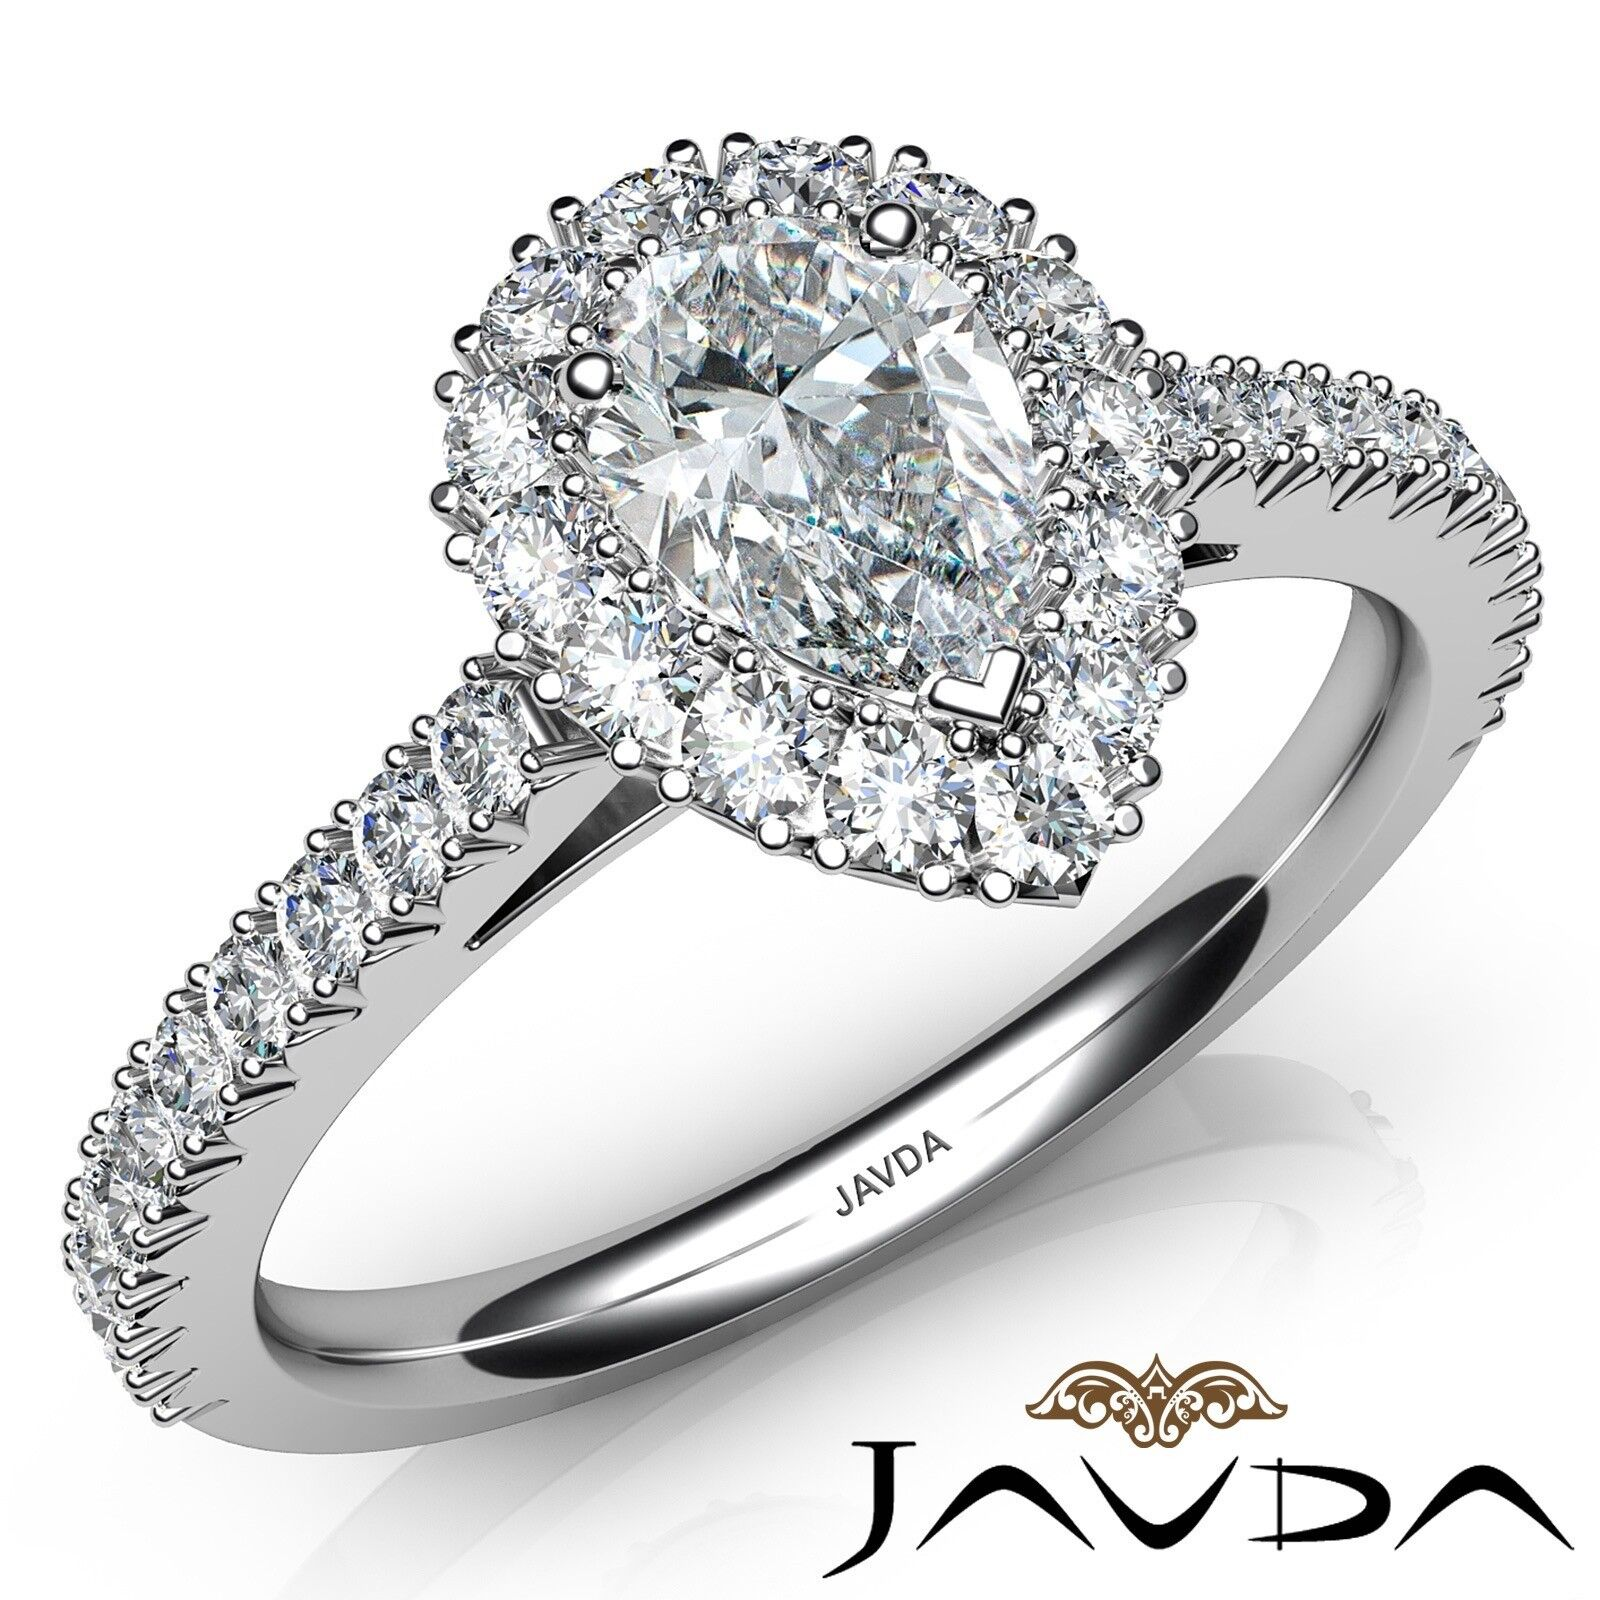 1.9ctw French Cut Halo Pave Pear Diamond Engagement Ring GIA G-VS1 White Gold